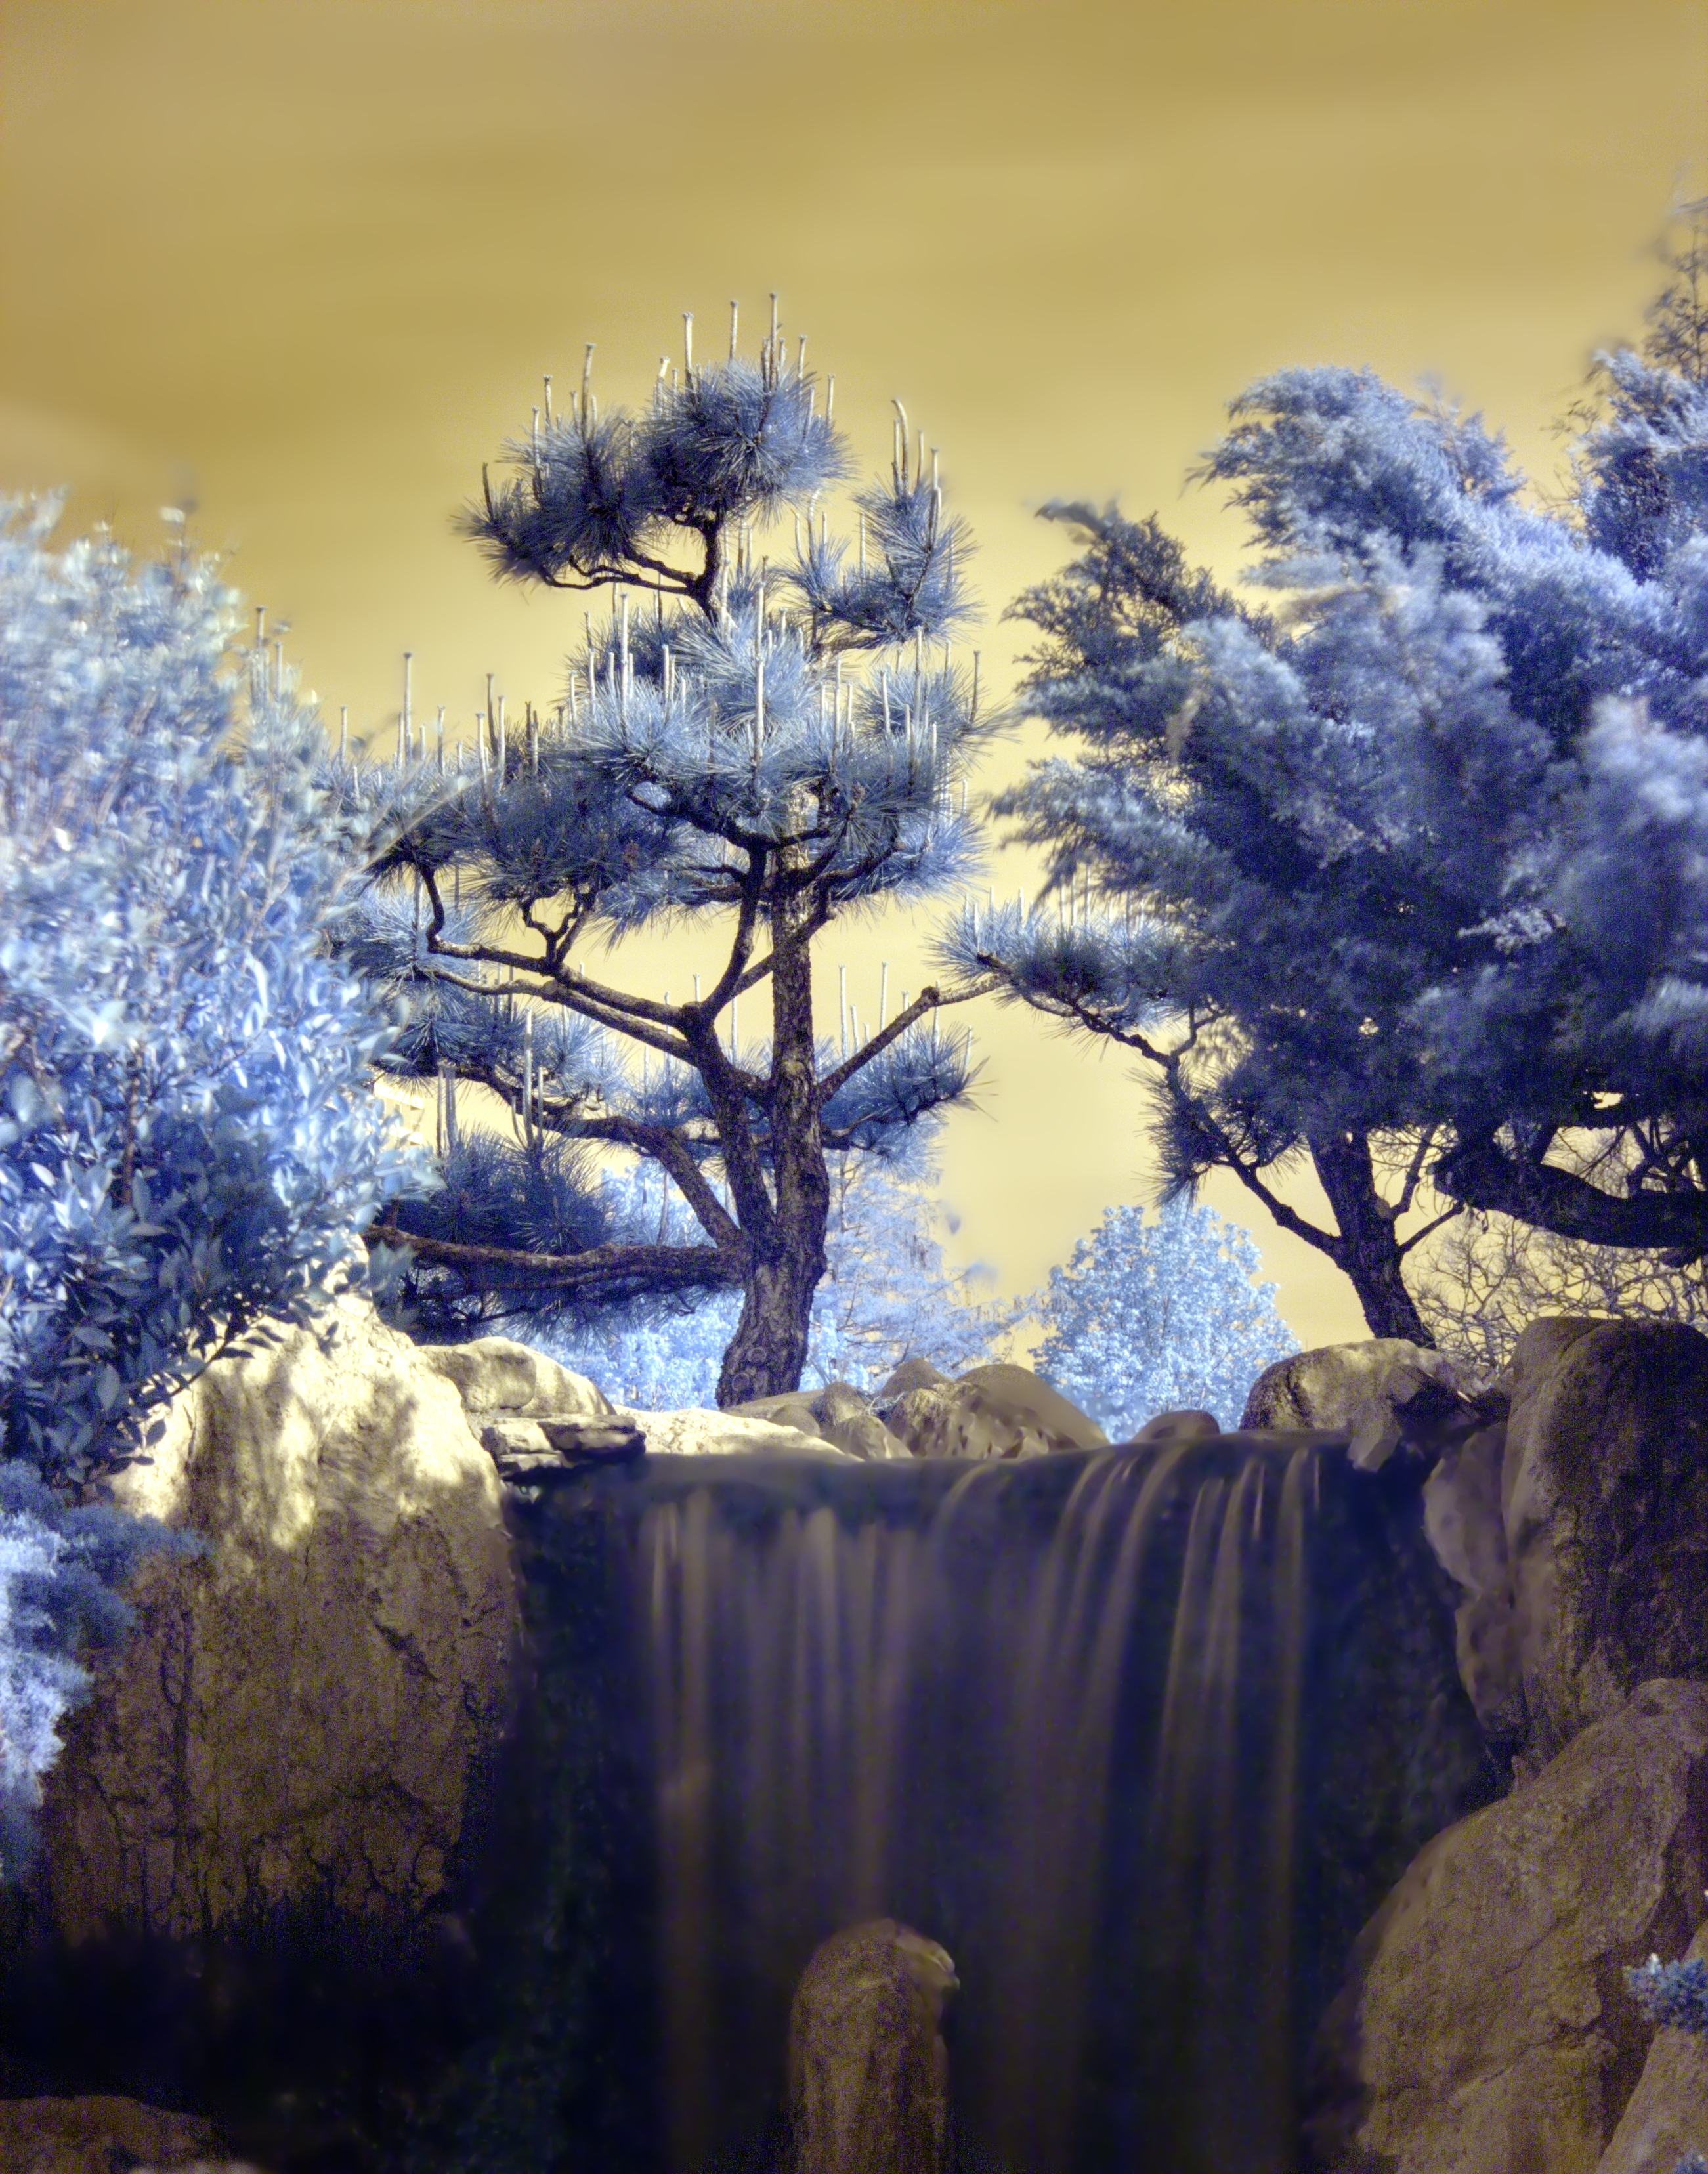 File:Japanese trees and waterfall - Infrared.jpg